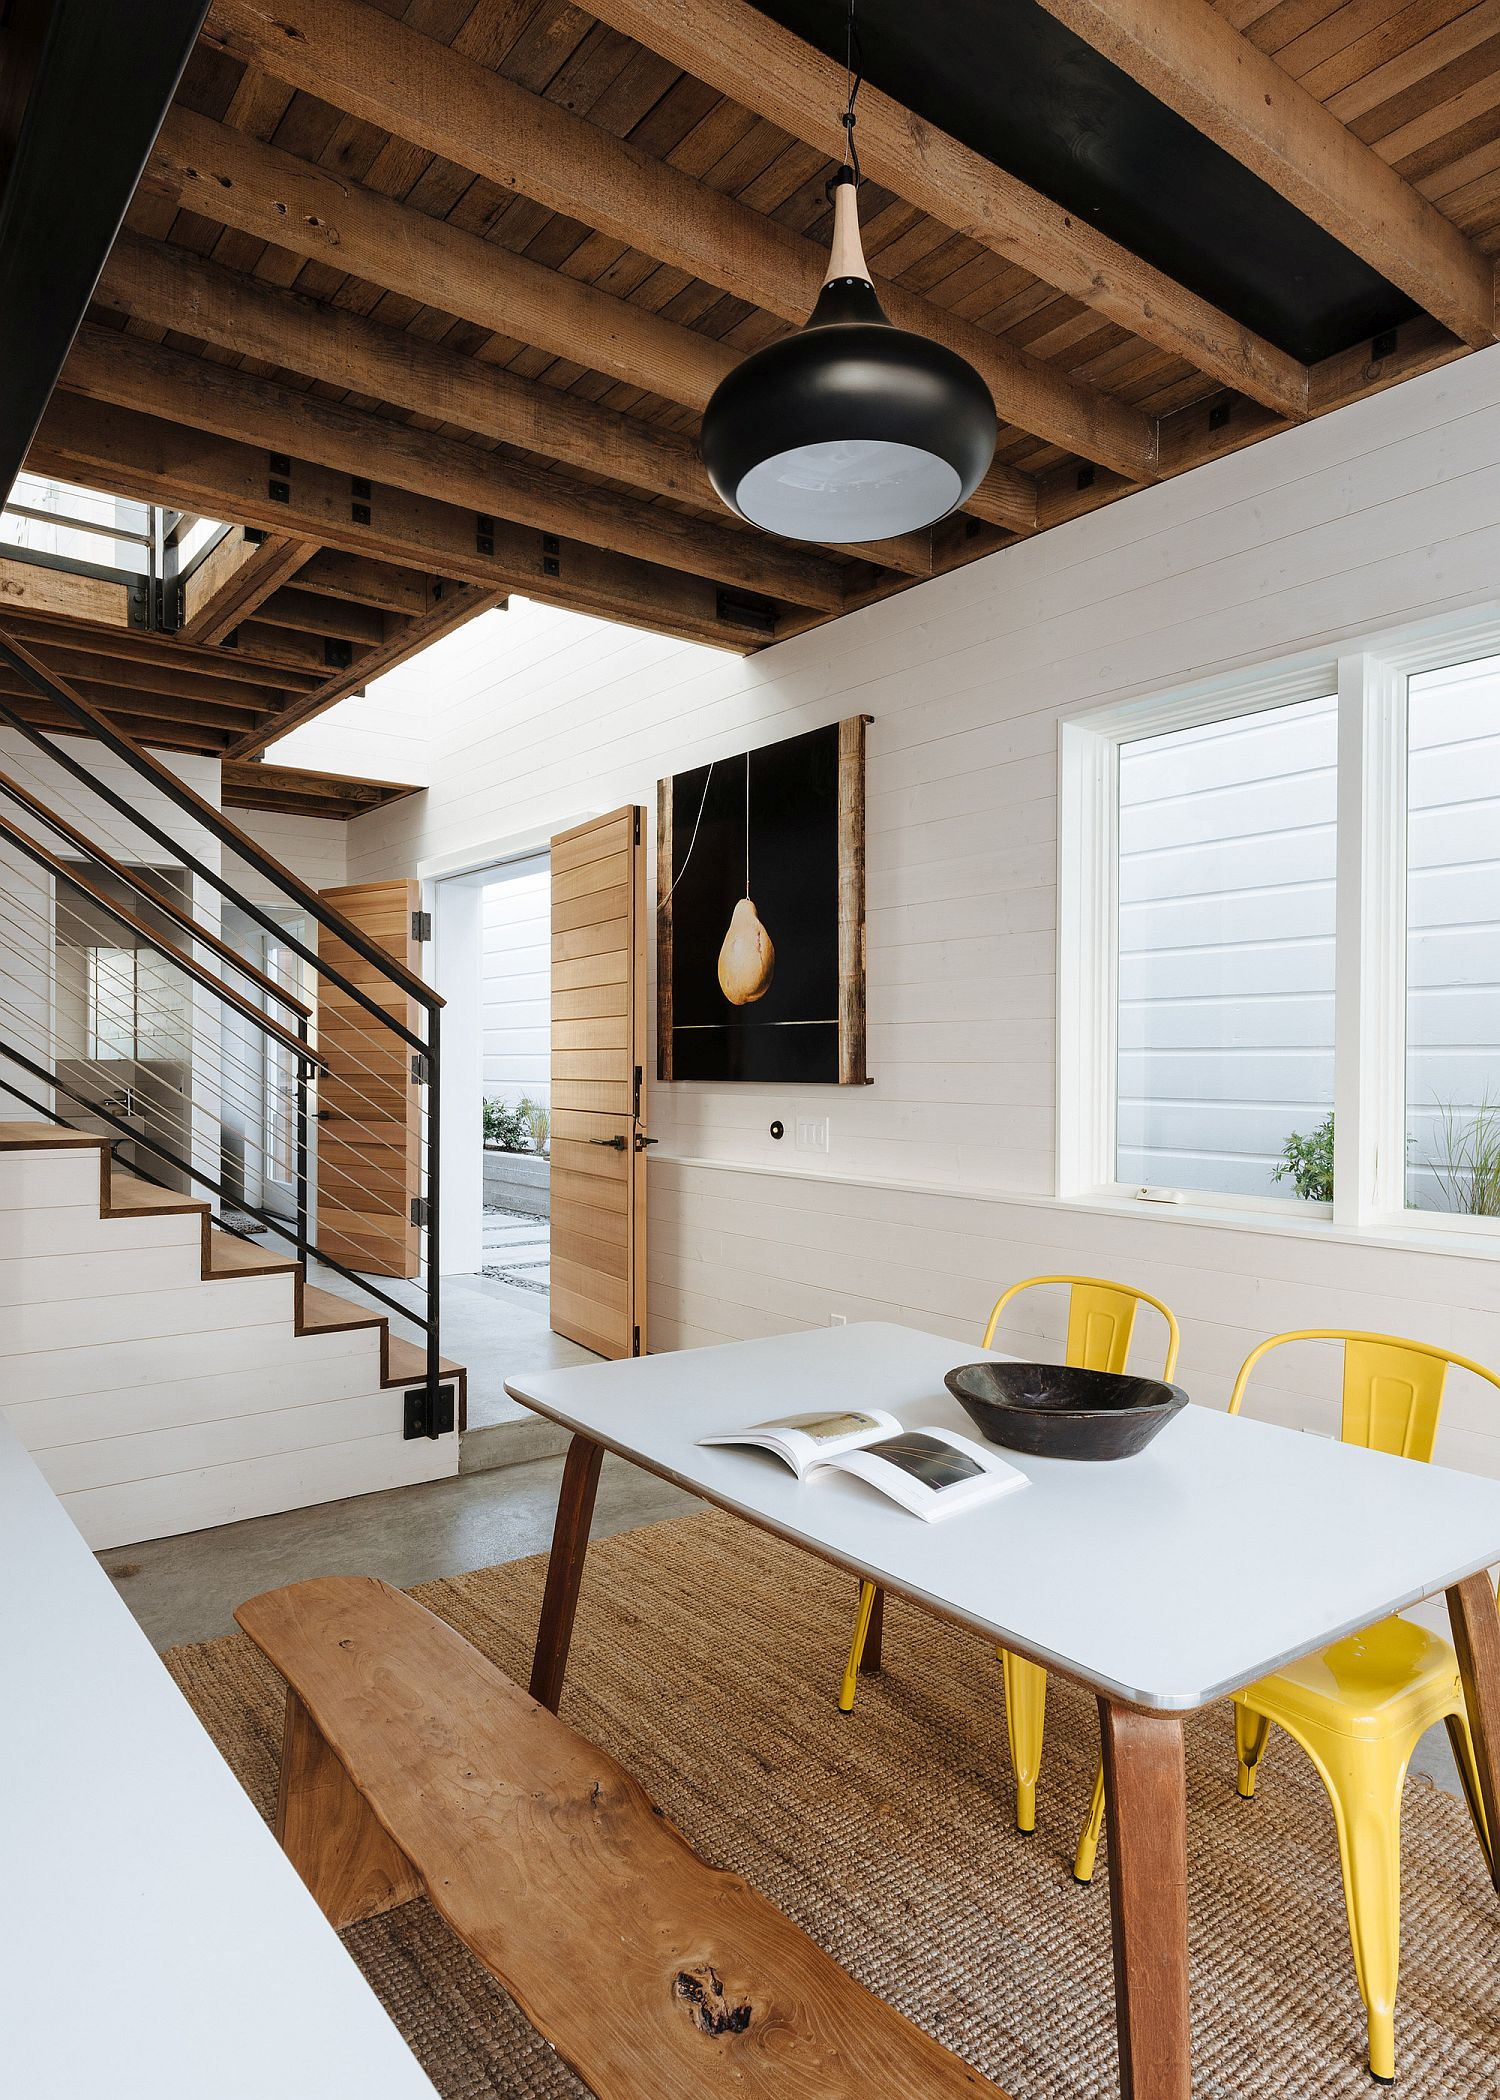 Stylish chairs in yellow add pops of color to the dining space in white and wood